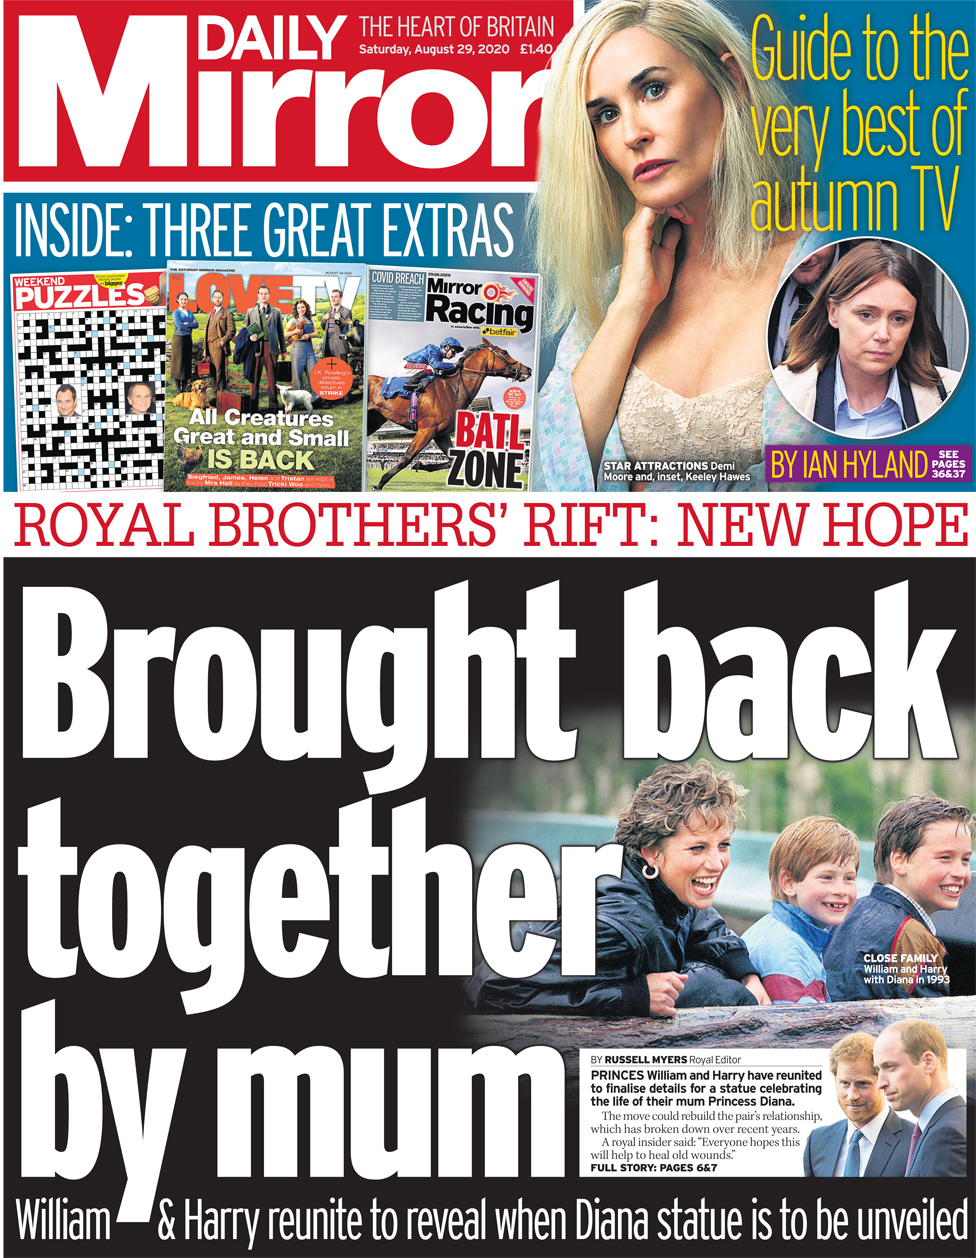 The Daily Mirror front page 29 August 2020